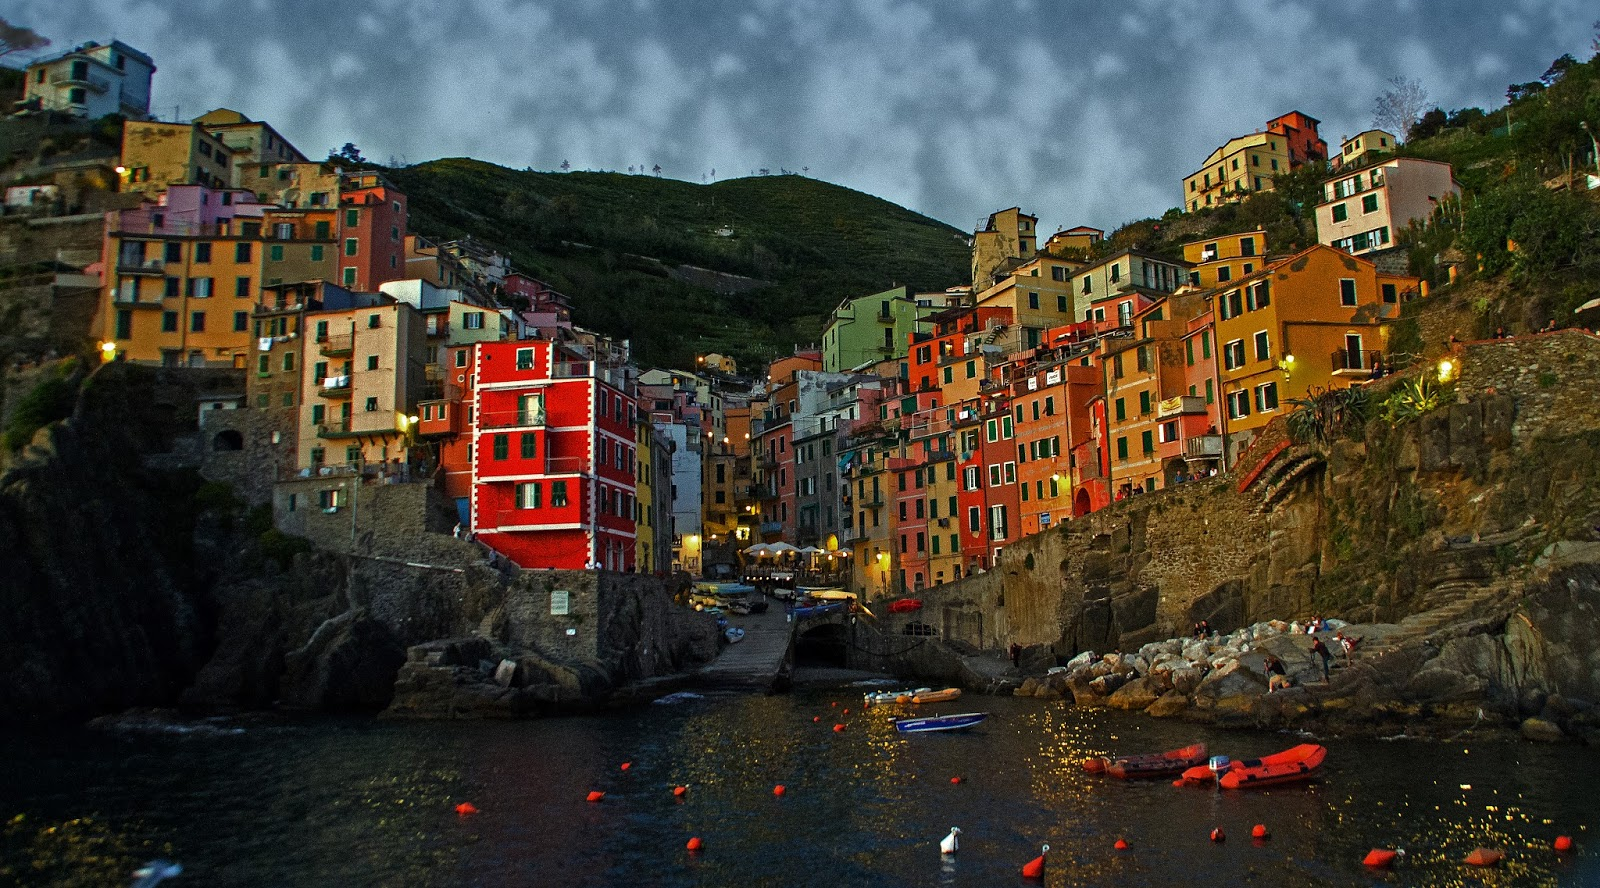 Our Cinque Terre Photo Diary